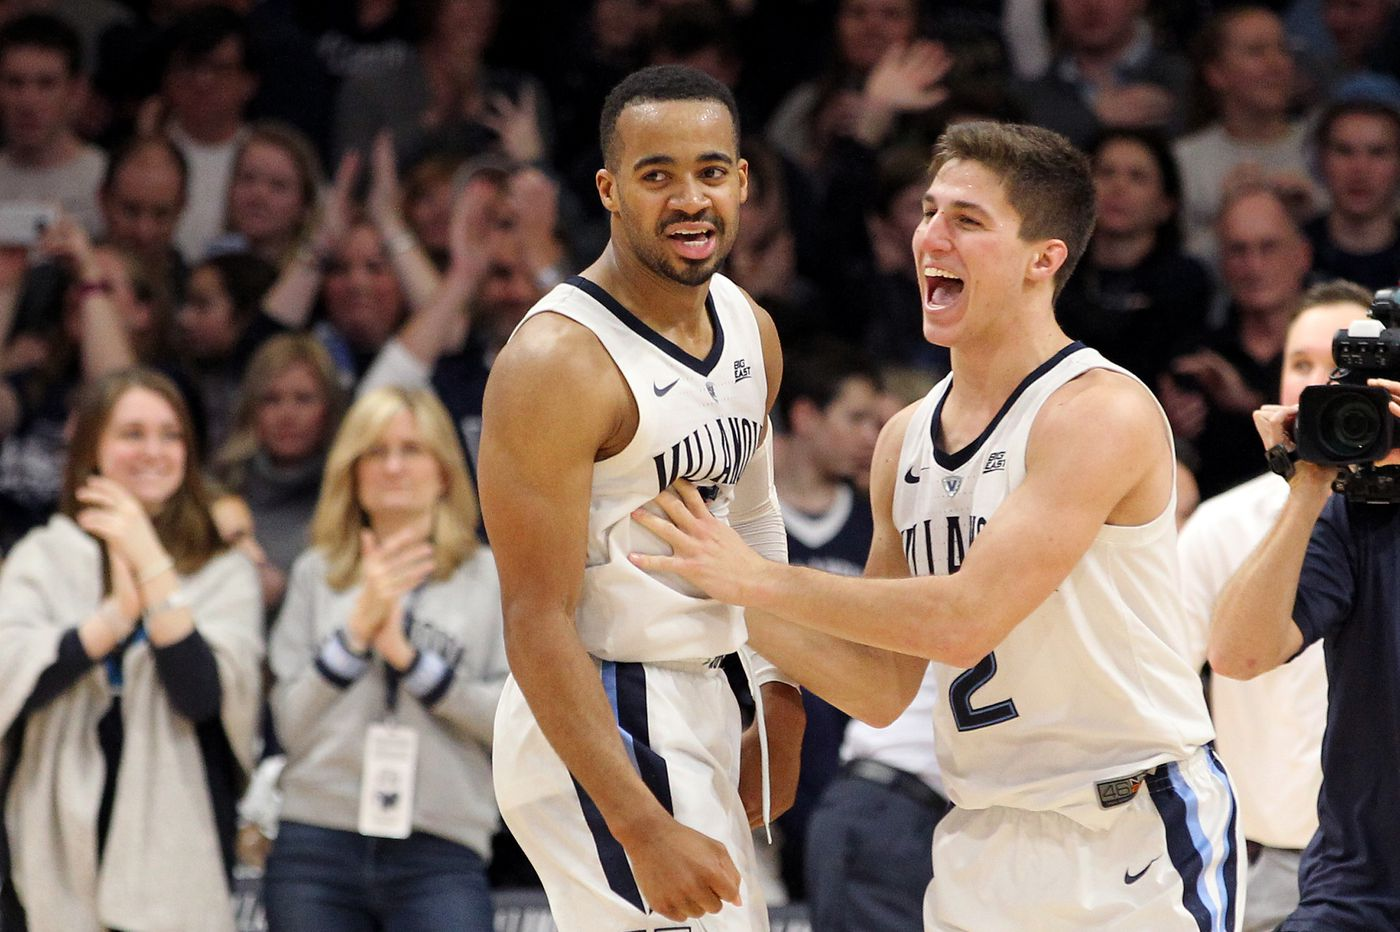 Booth and Paschall are Villanova's mainstays, but their teammates are doing their part